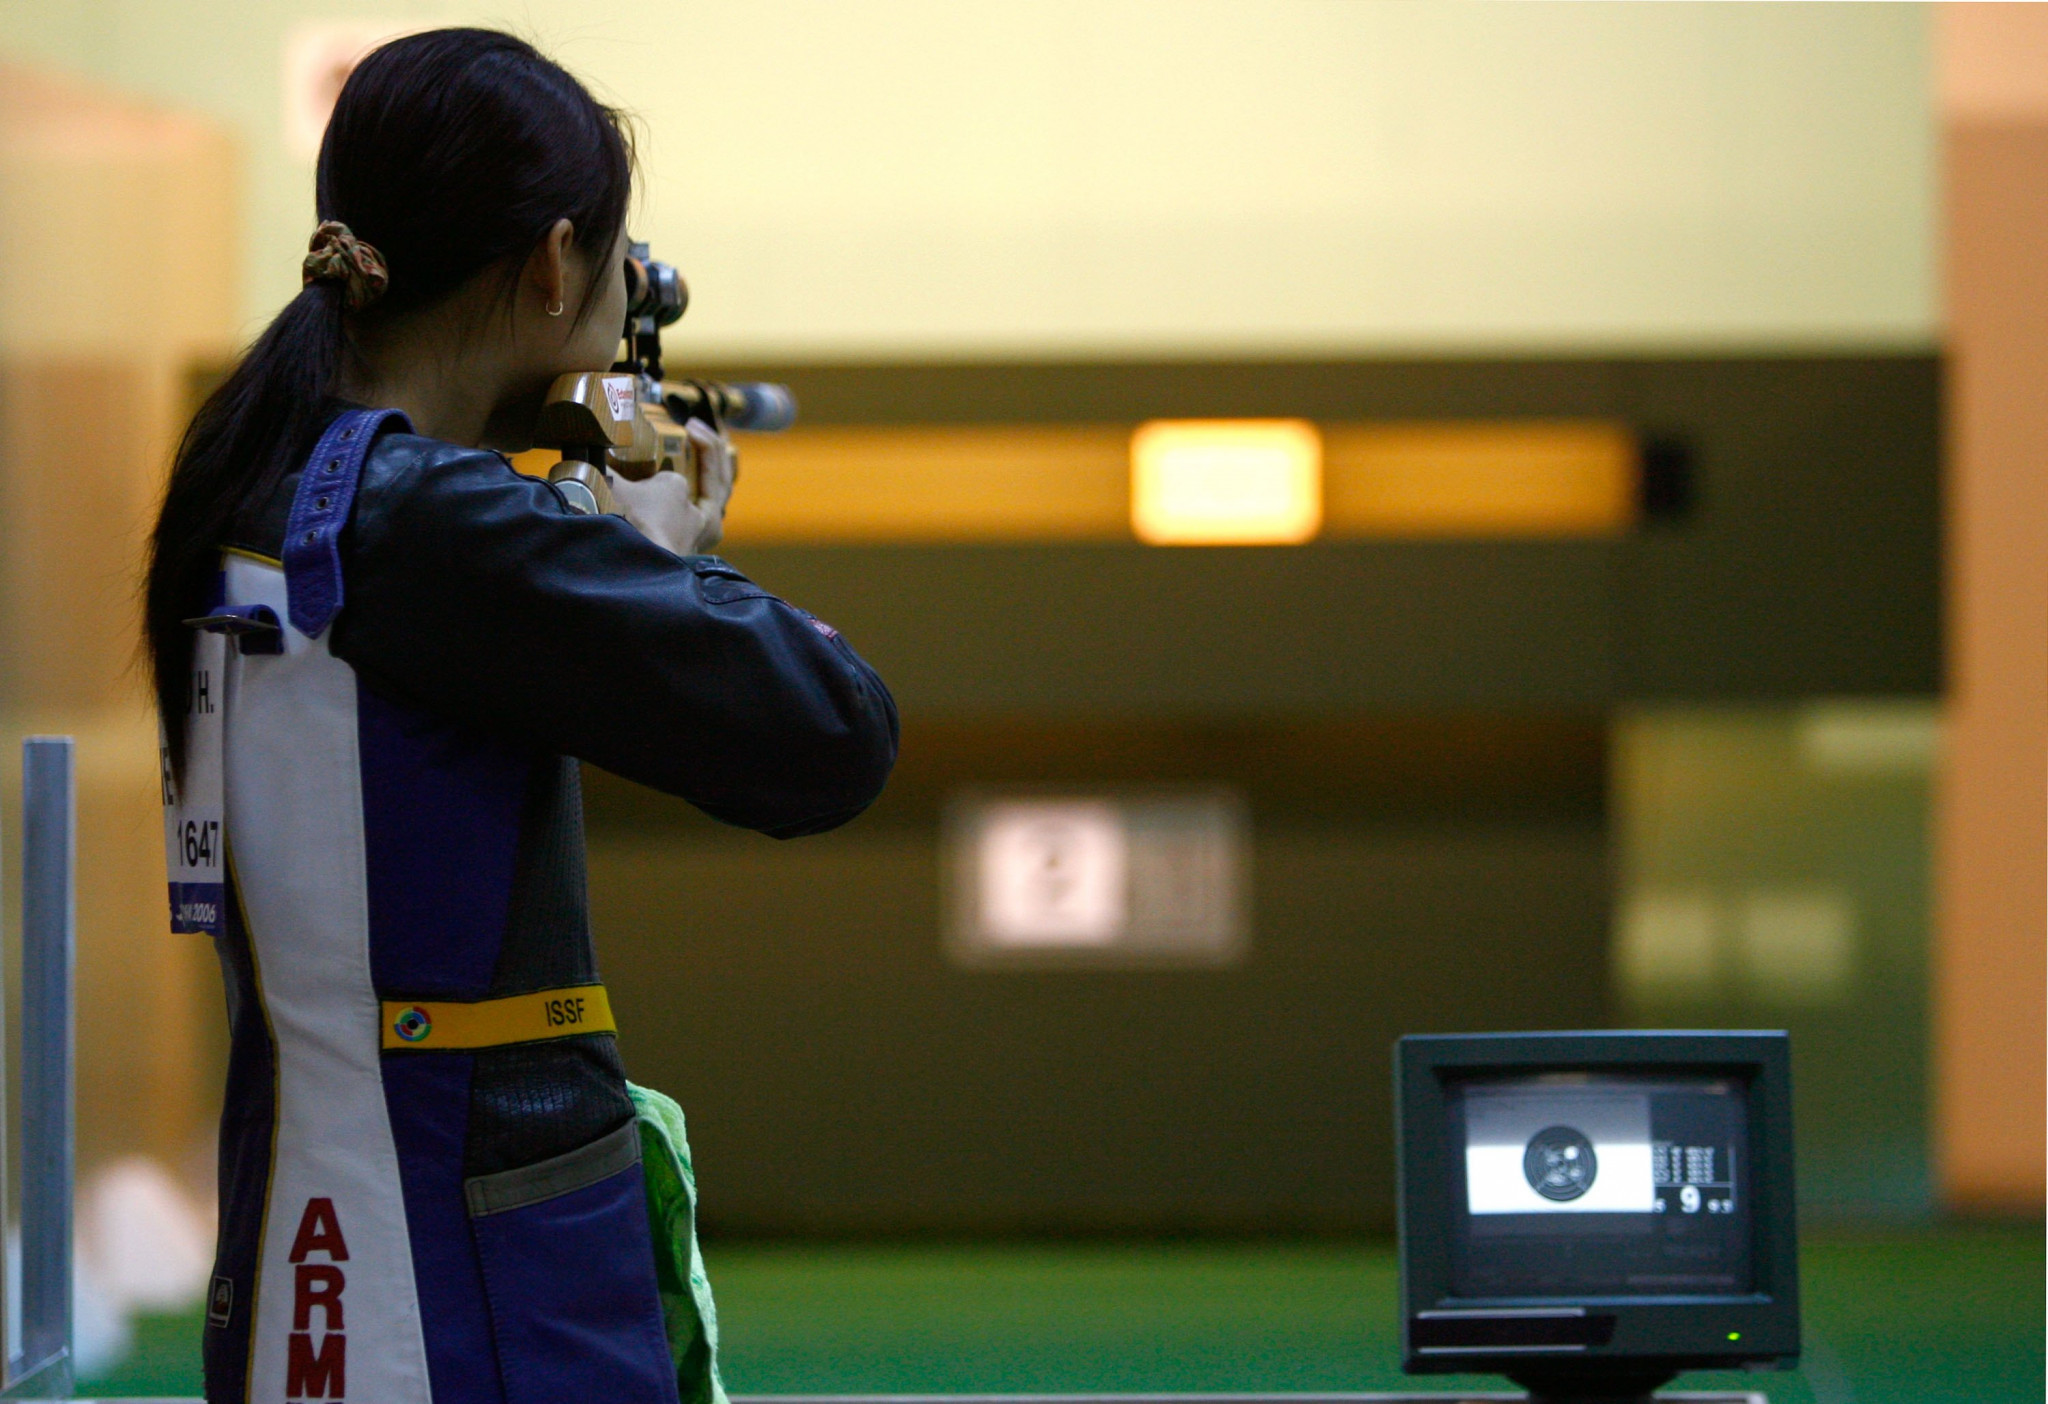 The ISSF World Championship Running Target in Châteauroux has been pushed back to 2022 ©Getty Images